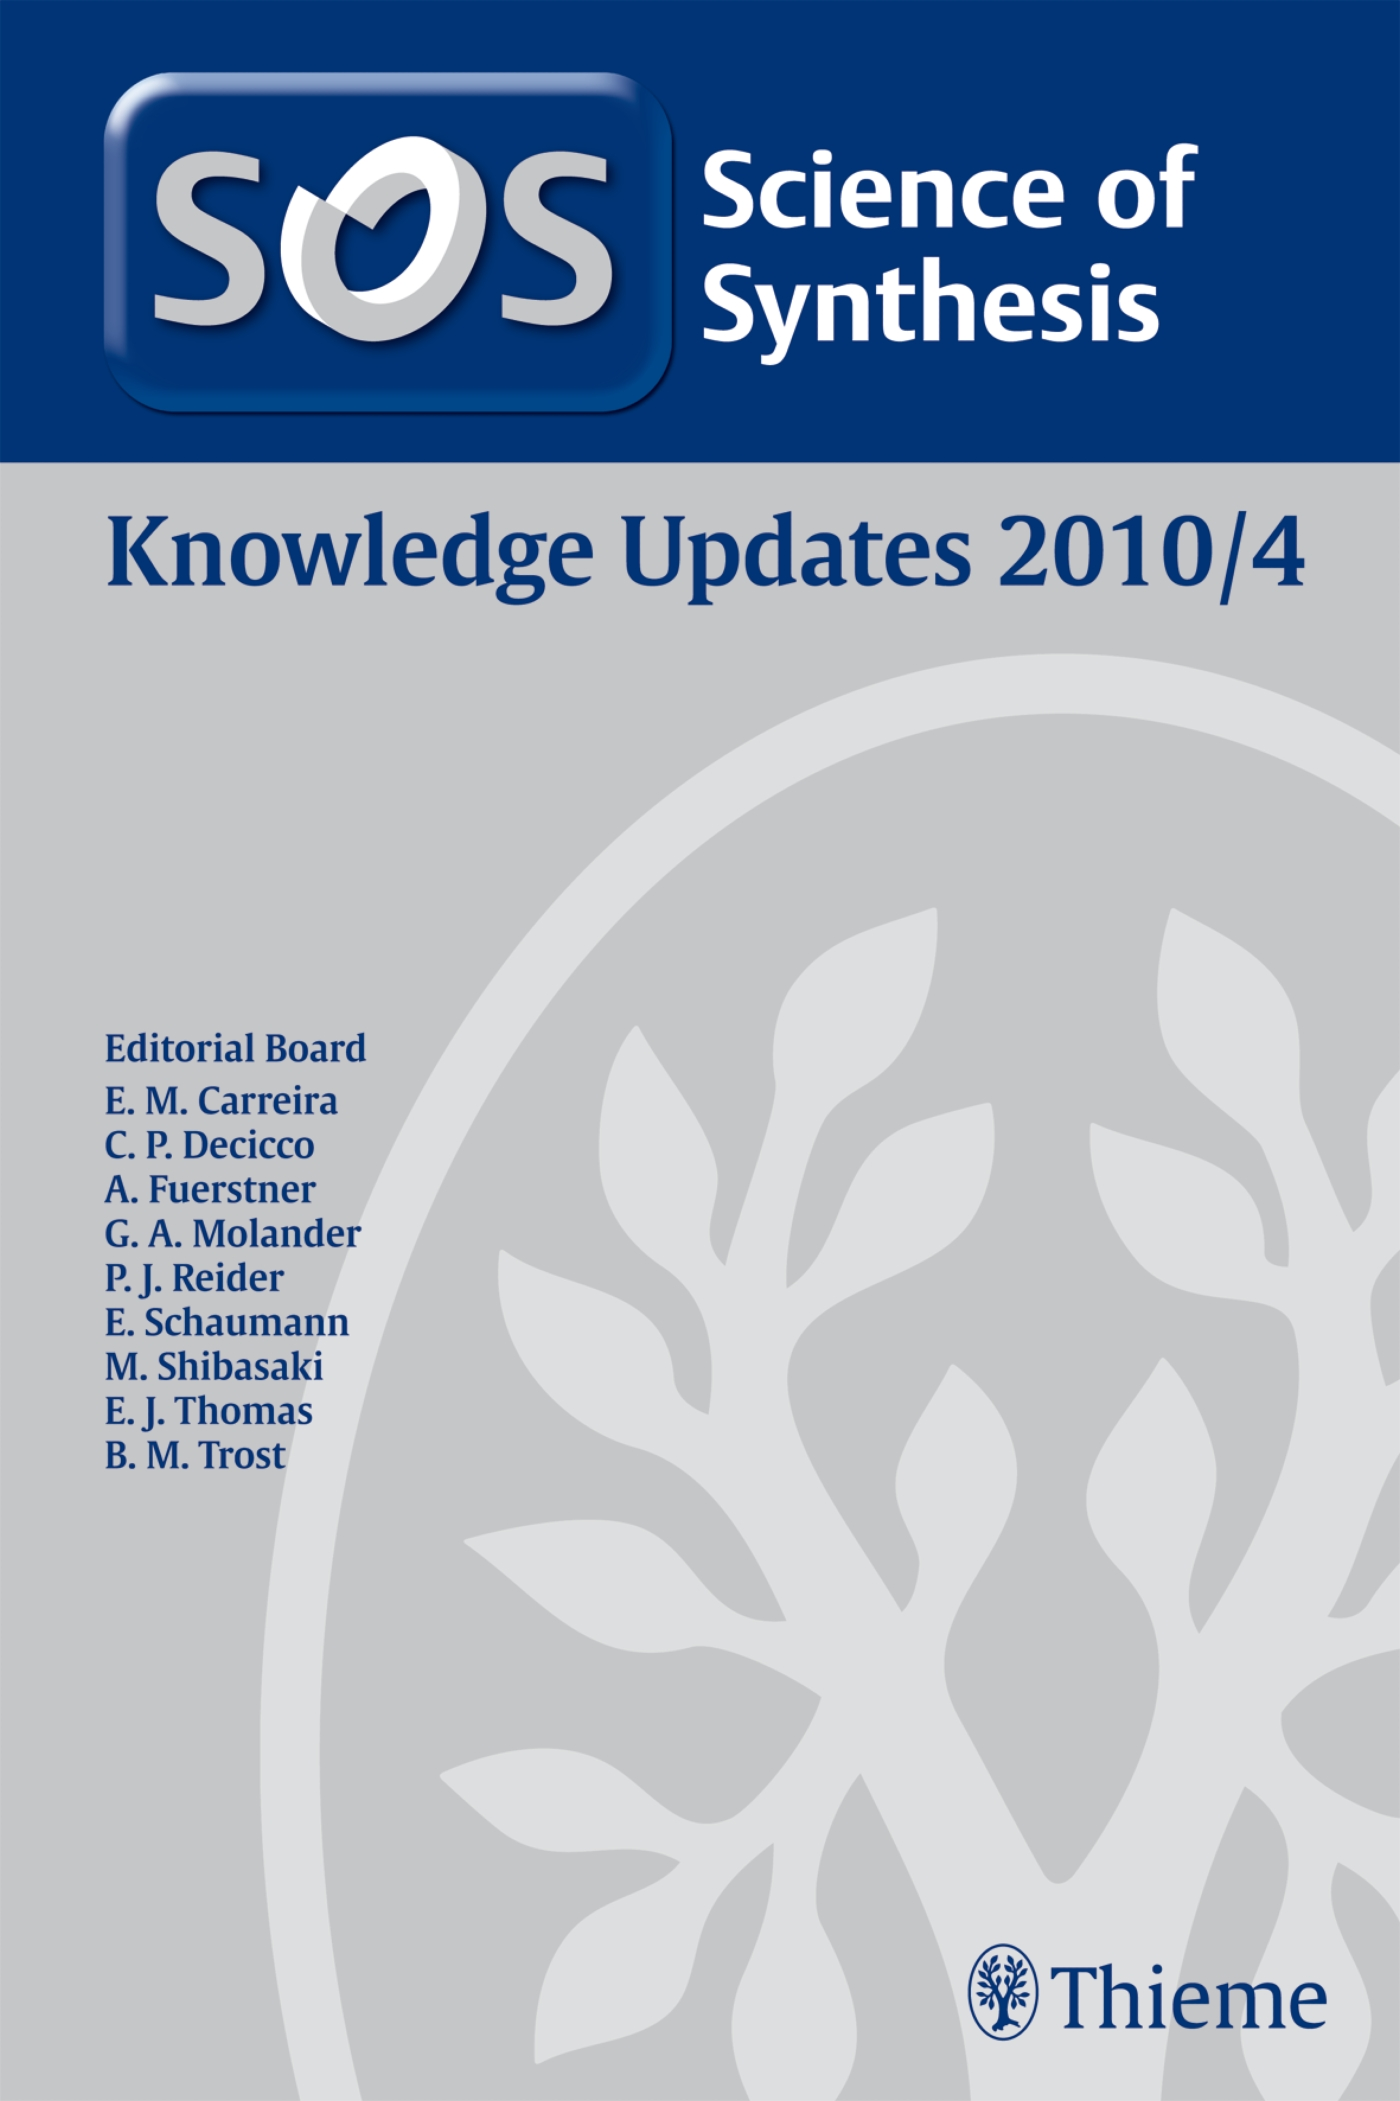 Science of Synthesis Knowledge Updates 2010 Vol. 4